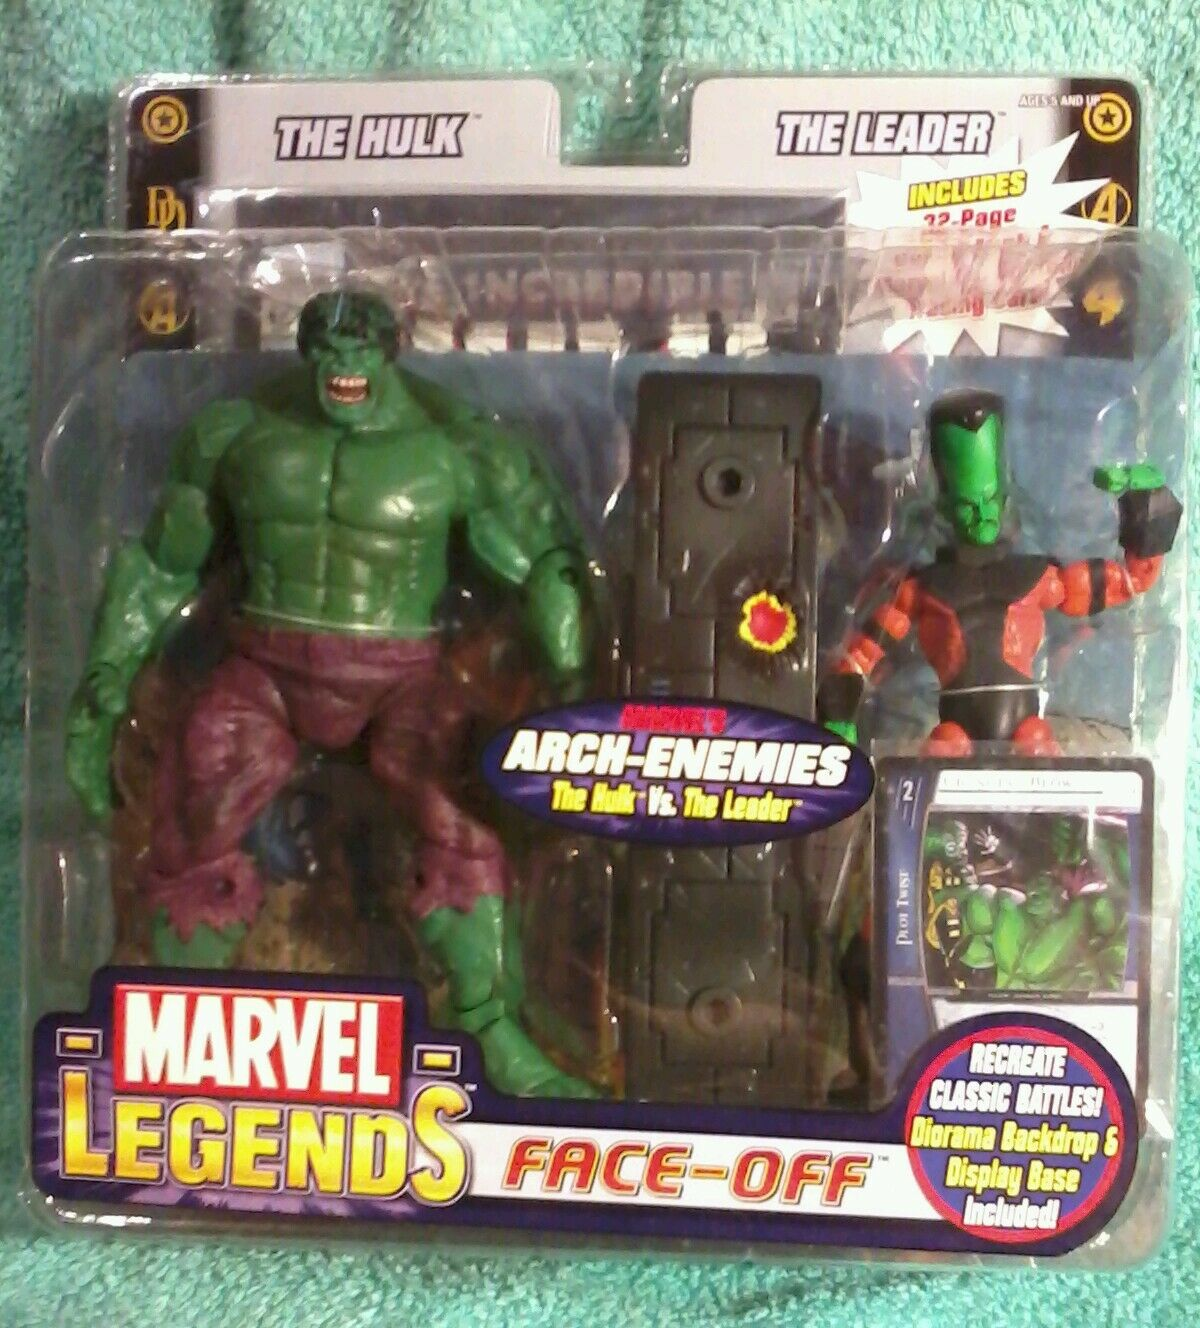 HULK vs LEADER long head variant   Marvel Legends Face-Off   toybiz Figure